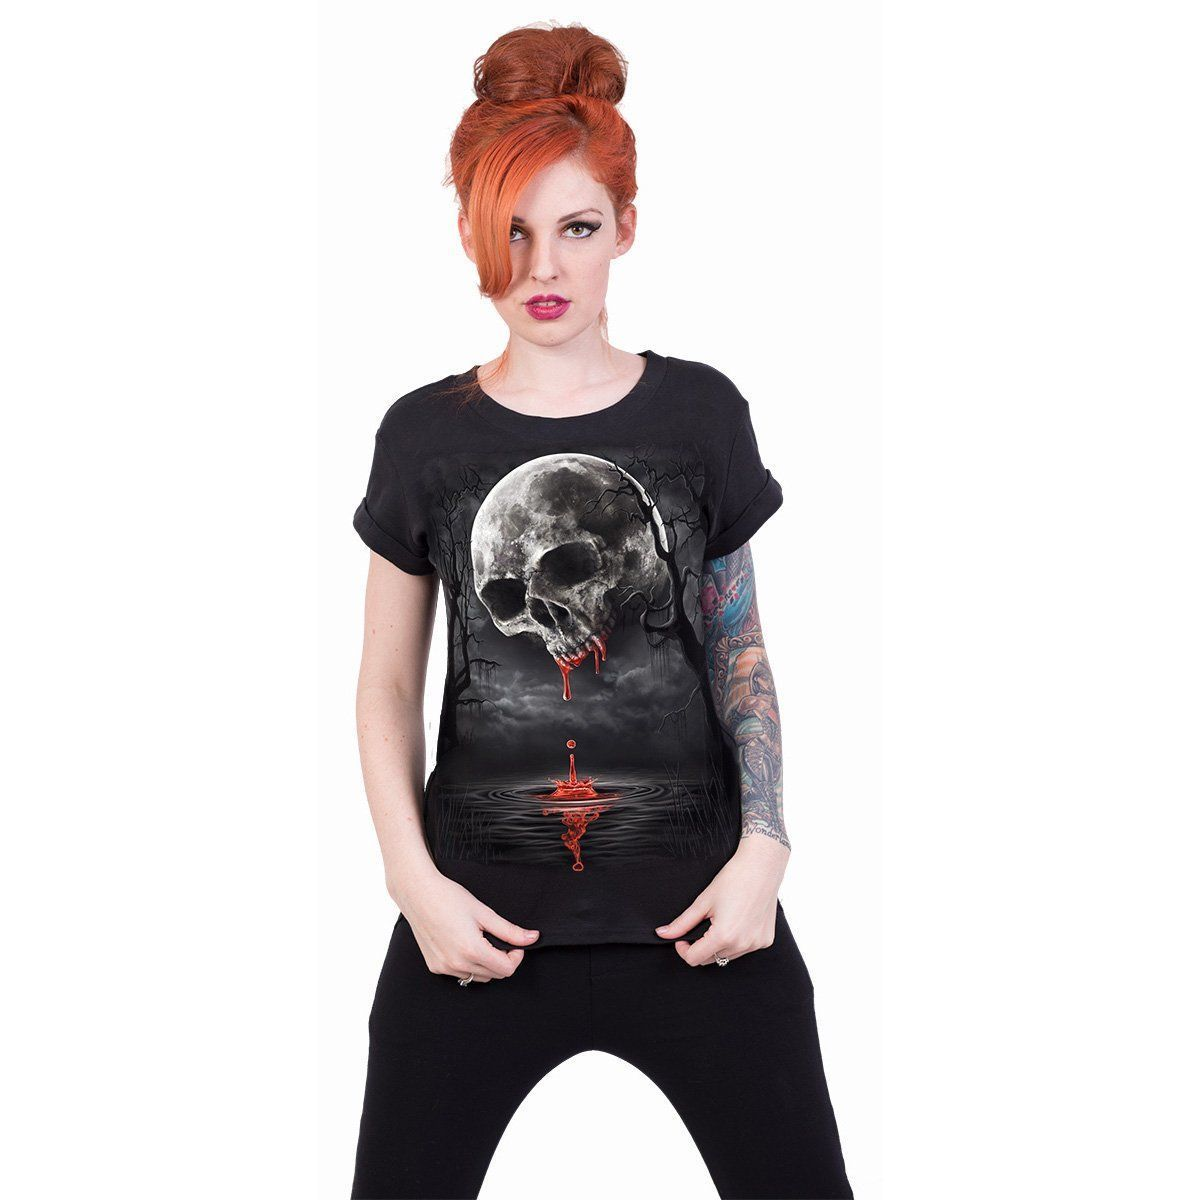 Why Are Skulls So Popular In Fashion? Do You Feel Edgy?